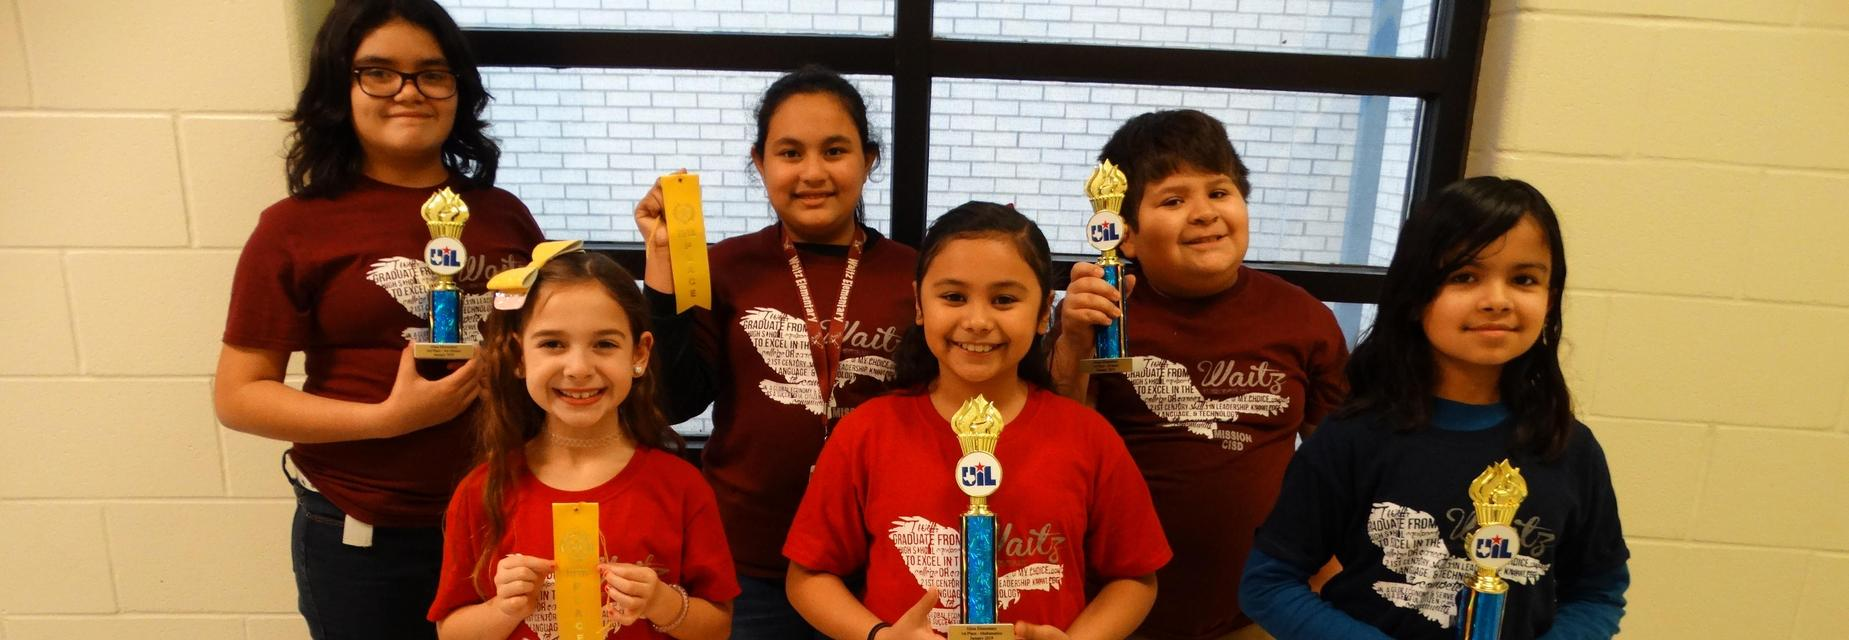 UIL kids pose with awards